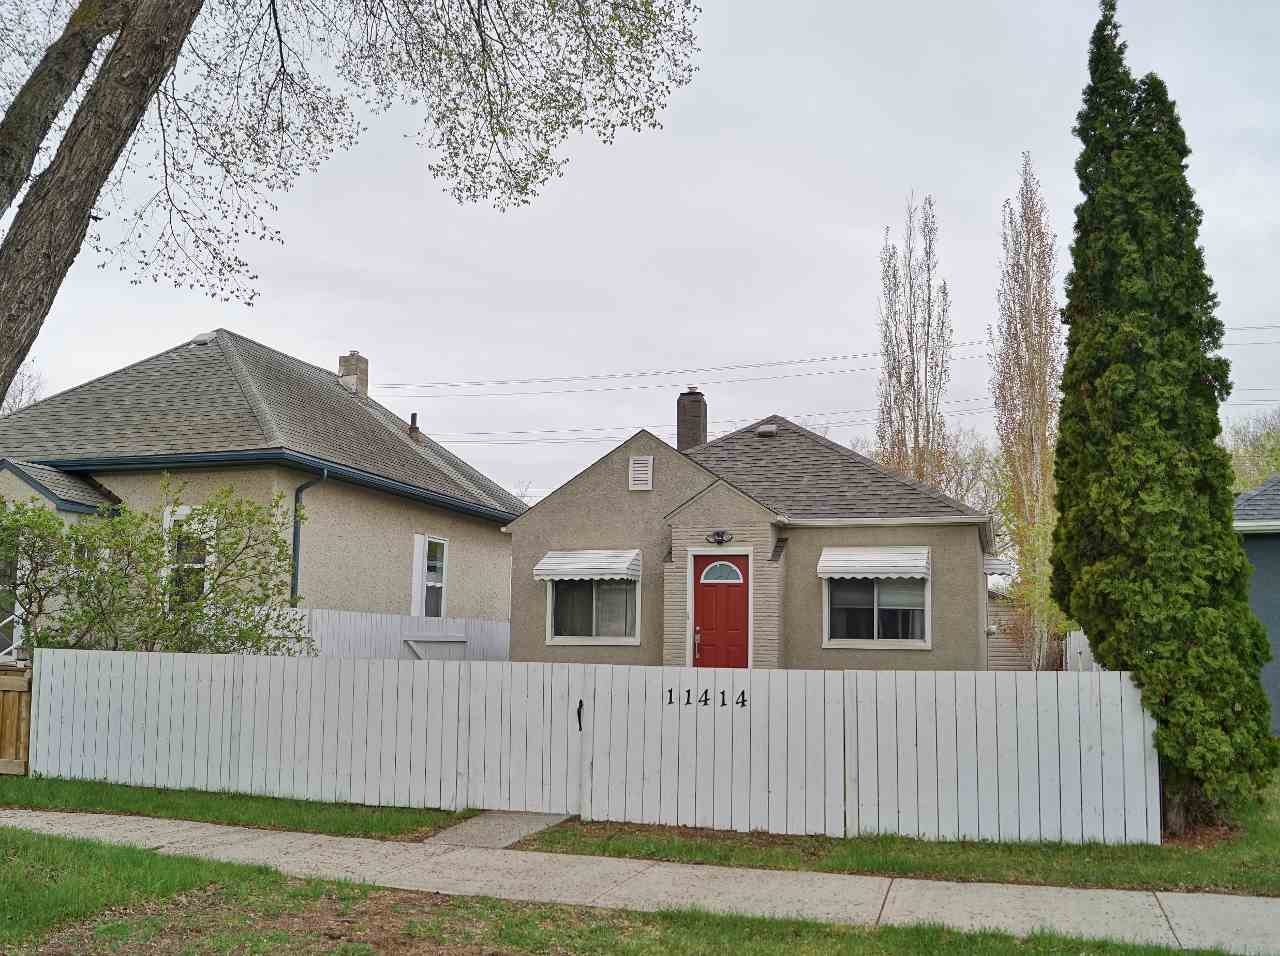 MLS® listing #E4157426 for sale located at 11414 84 Street